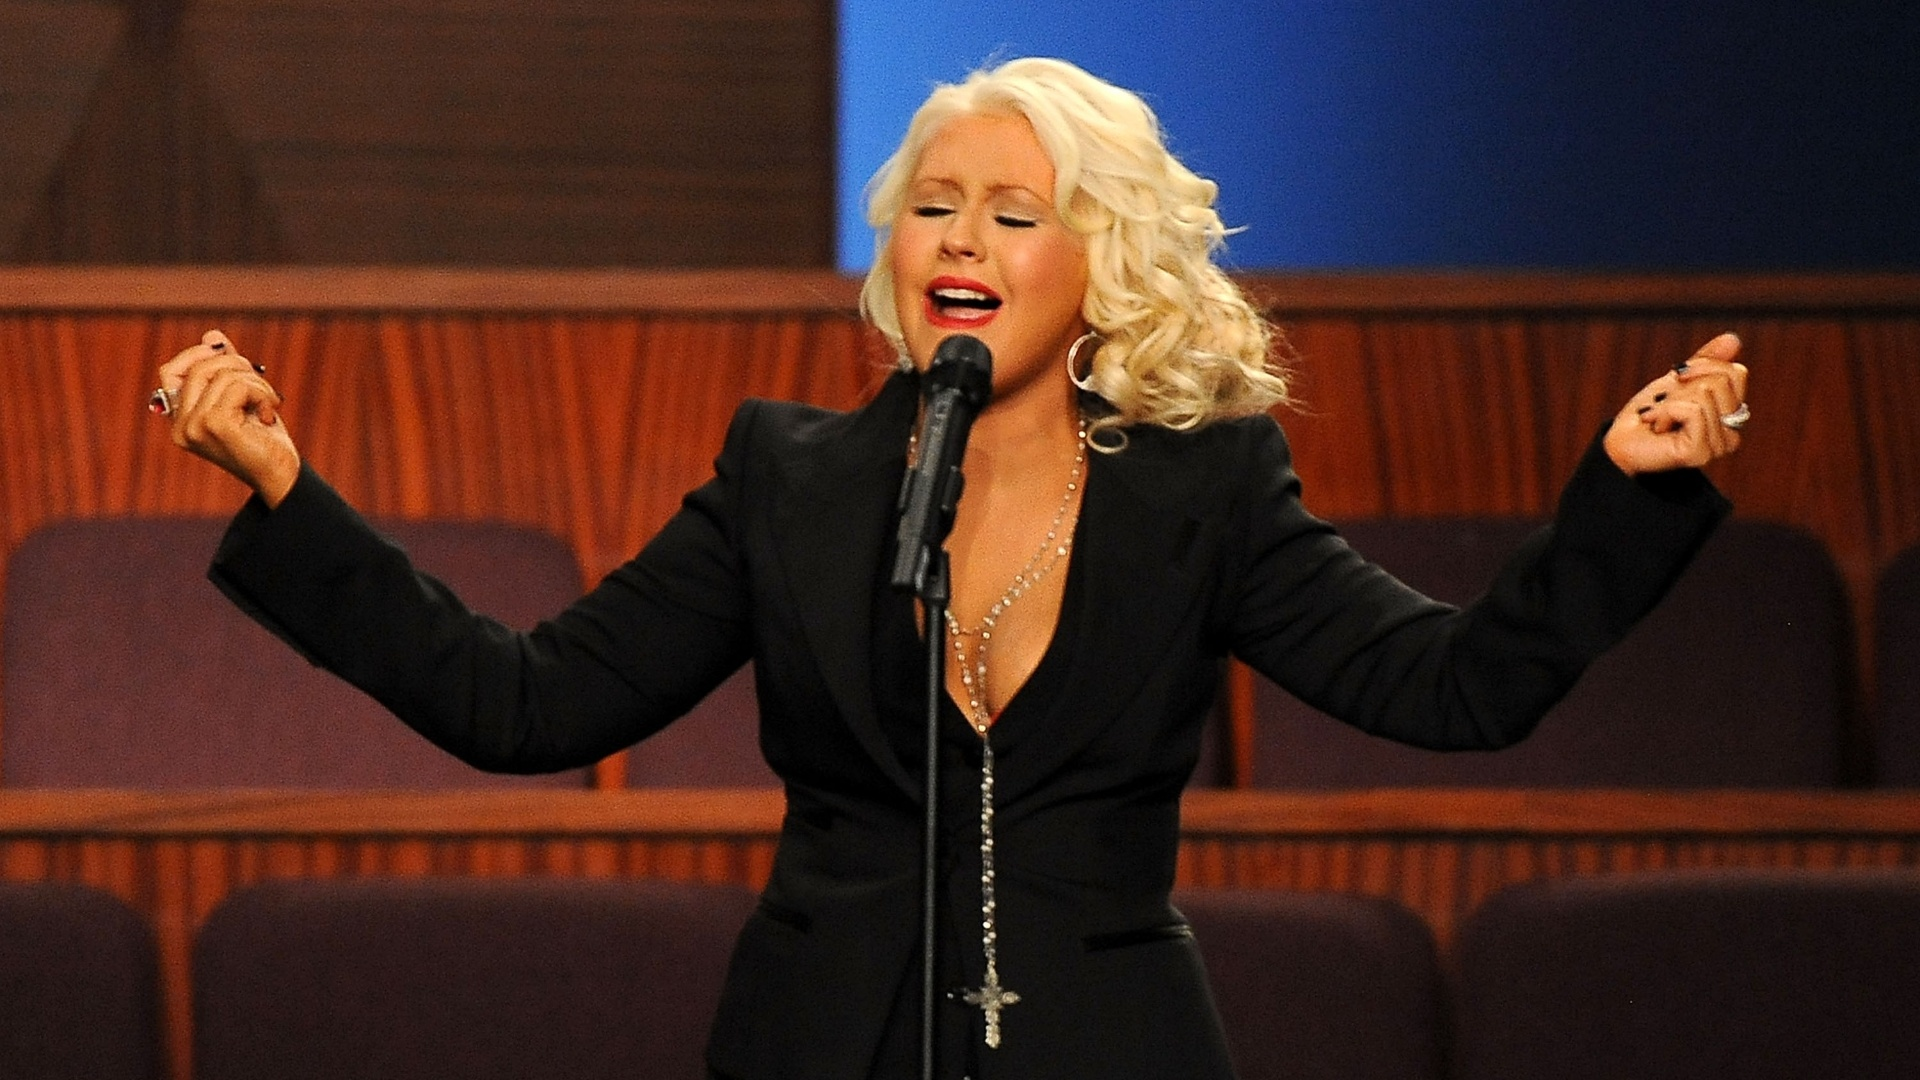 Christina Aguilera canta no funeral de Etta James (28/01/12)